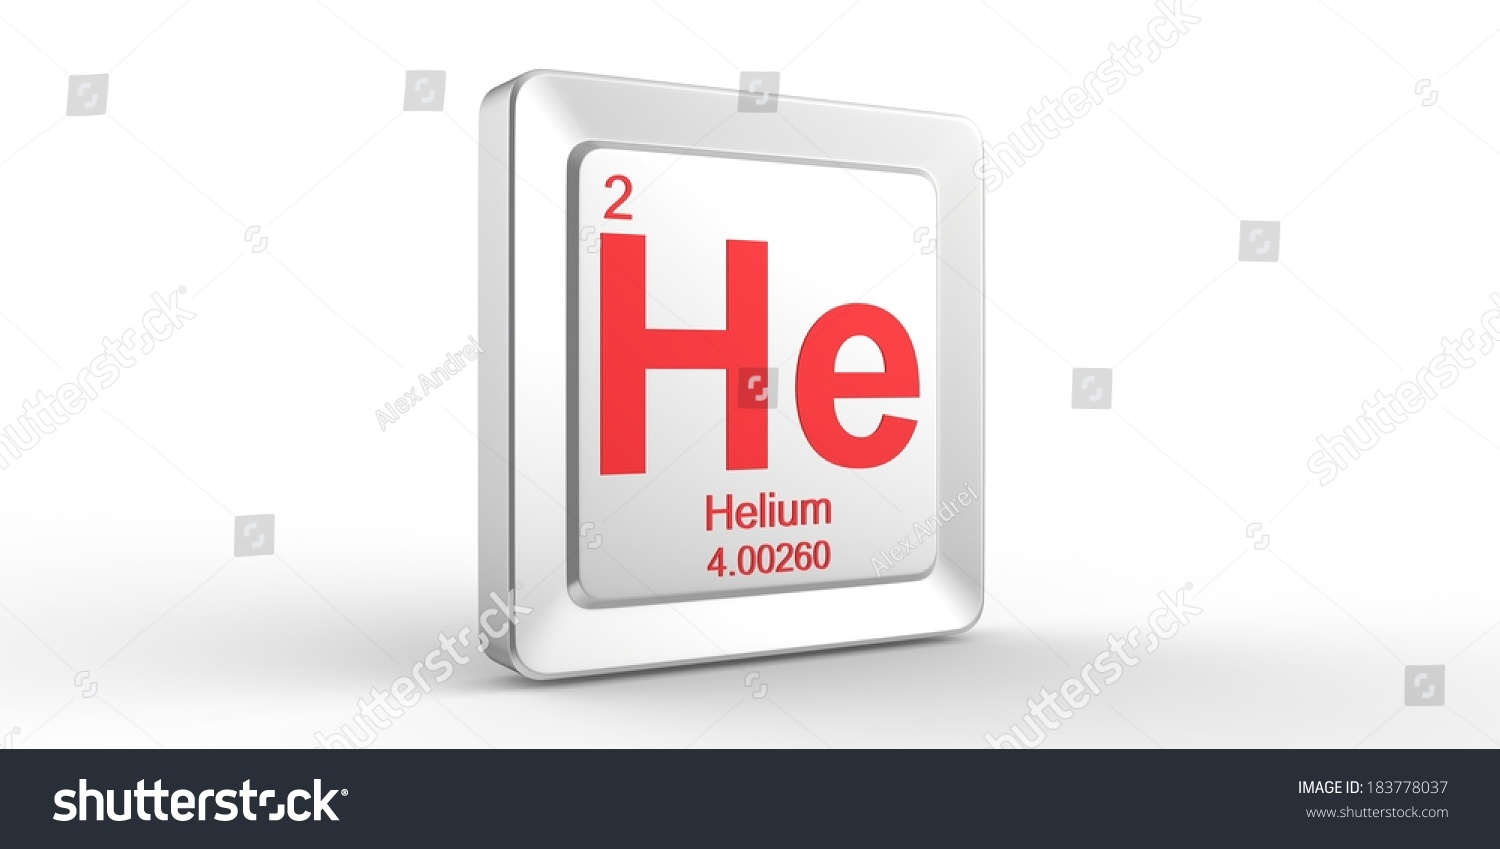 Helium element symbol gallery symbol and sign ideas he symbol 2 material helium chemical stock illustration 183778037 he symbol 2 material for helium chemical buycottarizona